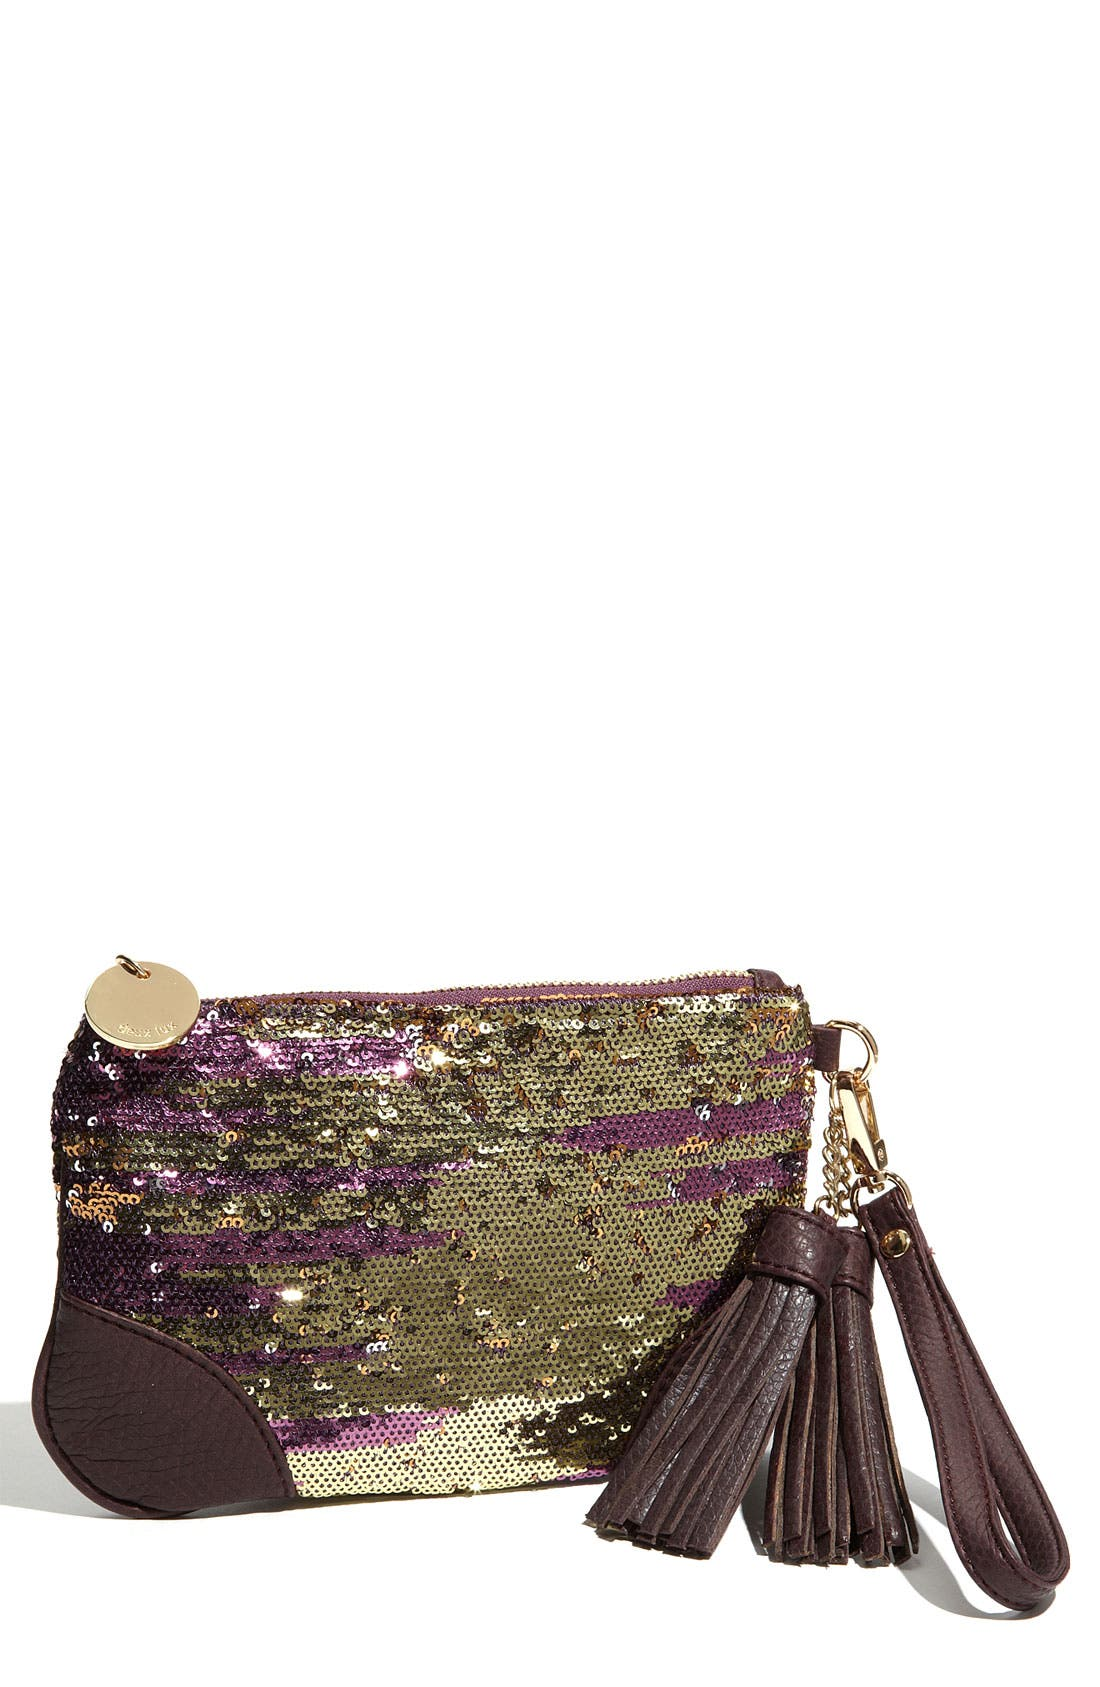 Alternate Image 1 Selected - Deux Lux 'Cosmic Love' Wristlet